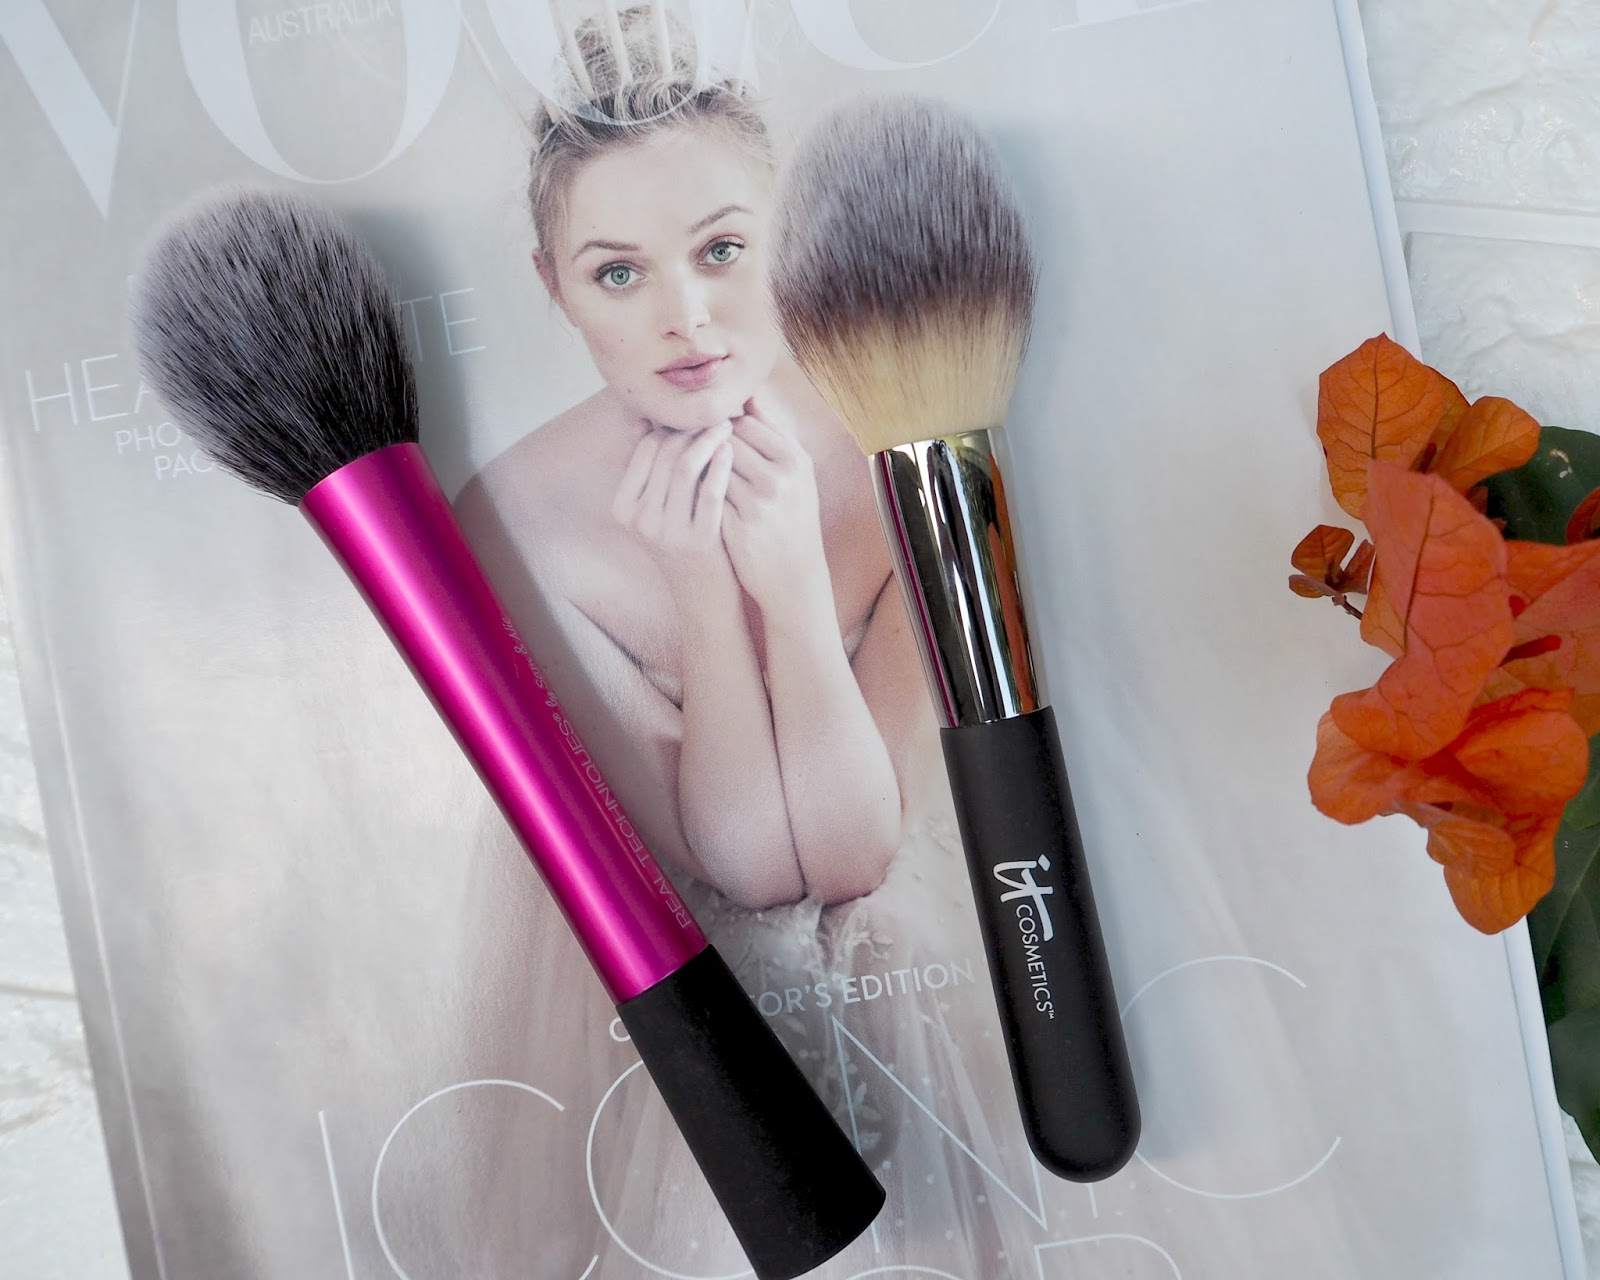 IT Cosmetics Heavenly Luxe Must-Haves Brush Set! : www.poshmakeupnstuff.blogspot.com